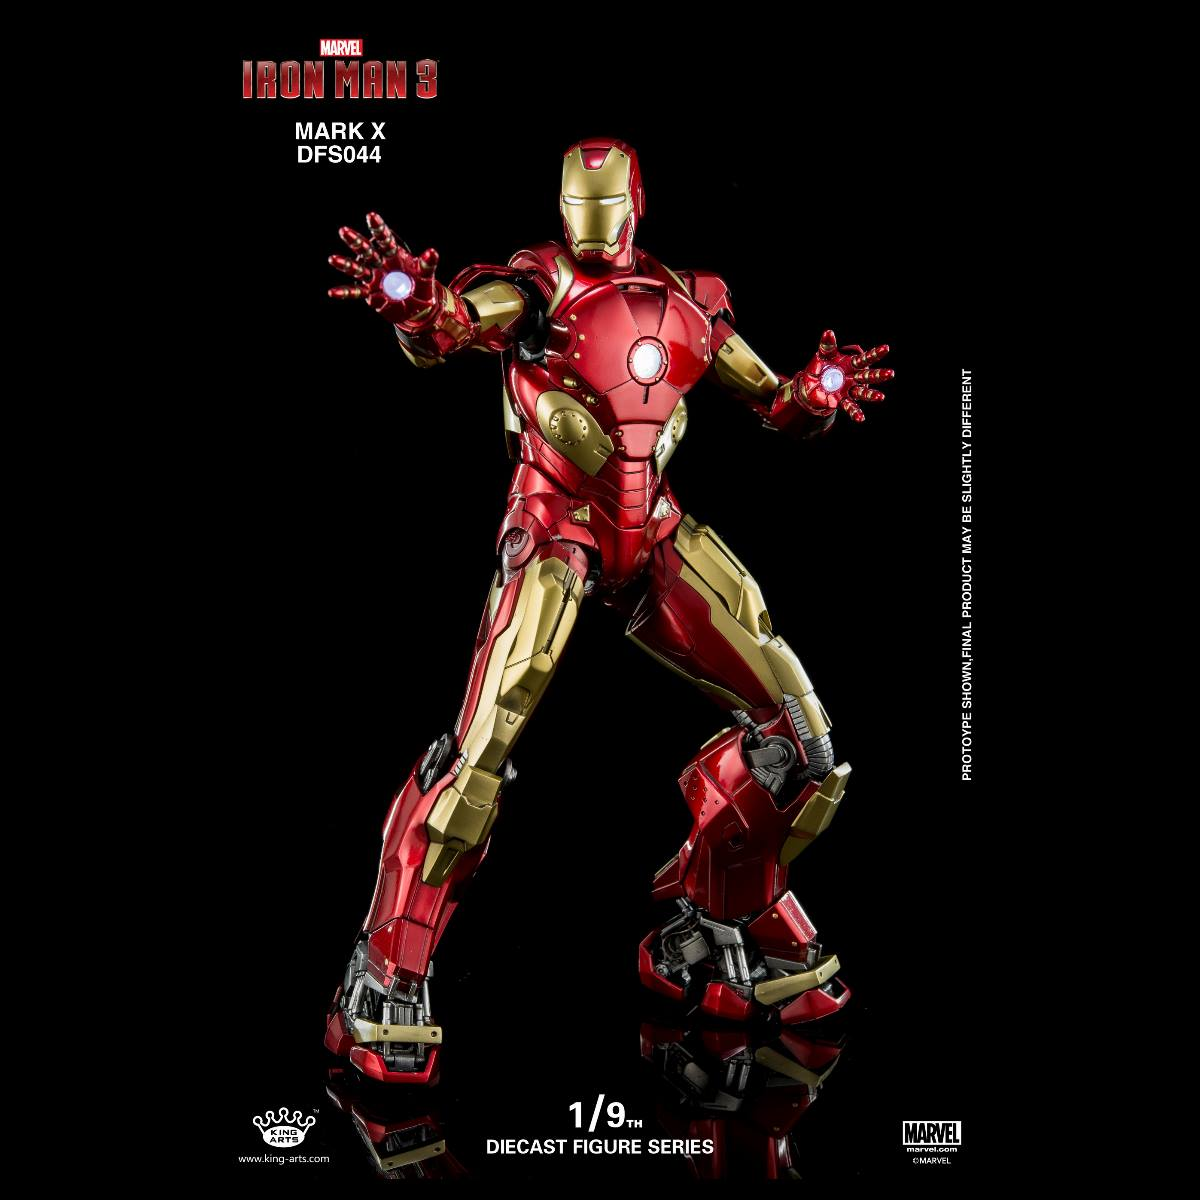 King Arts 1/9 Scale Die Cast Iron Man Action Figure